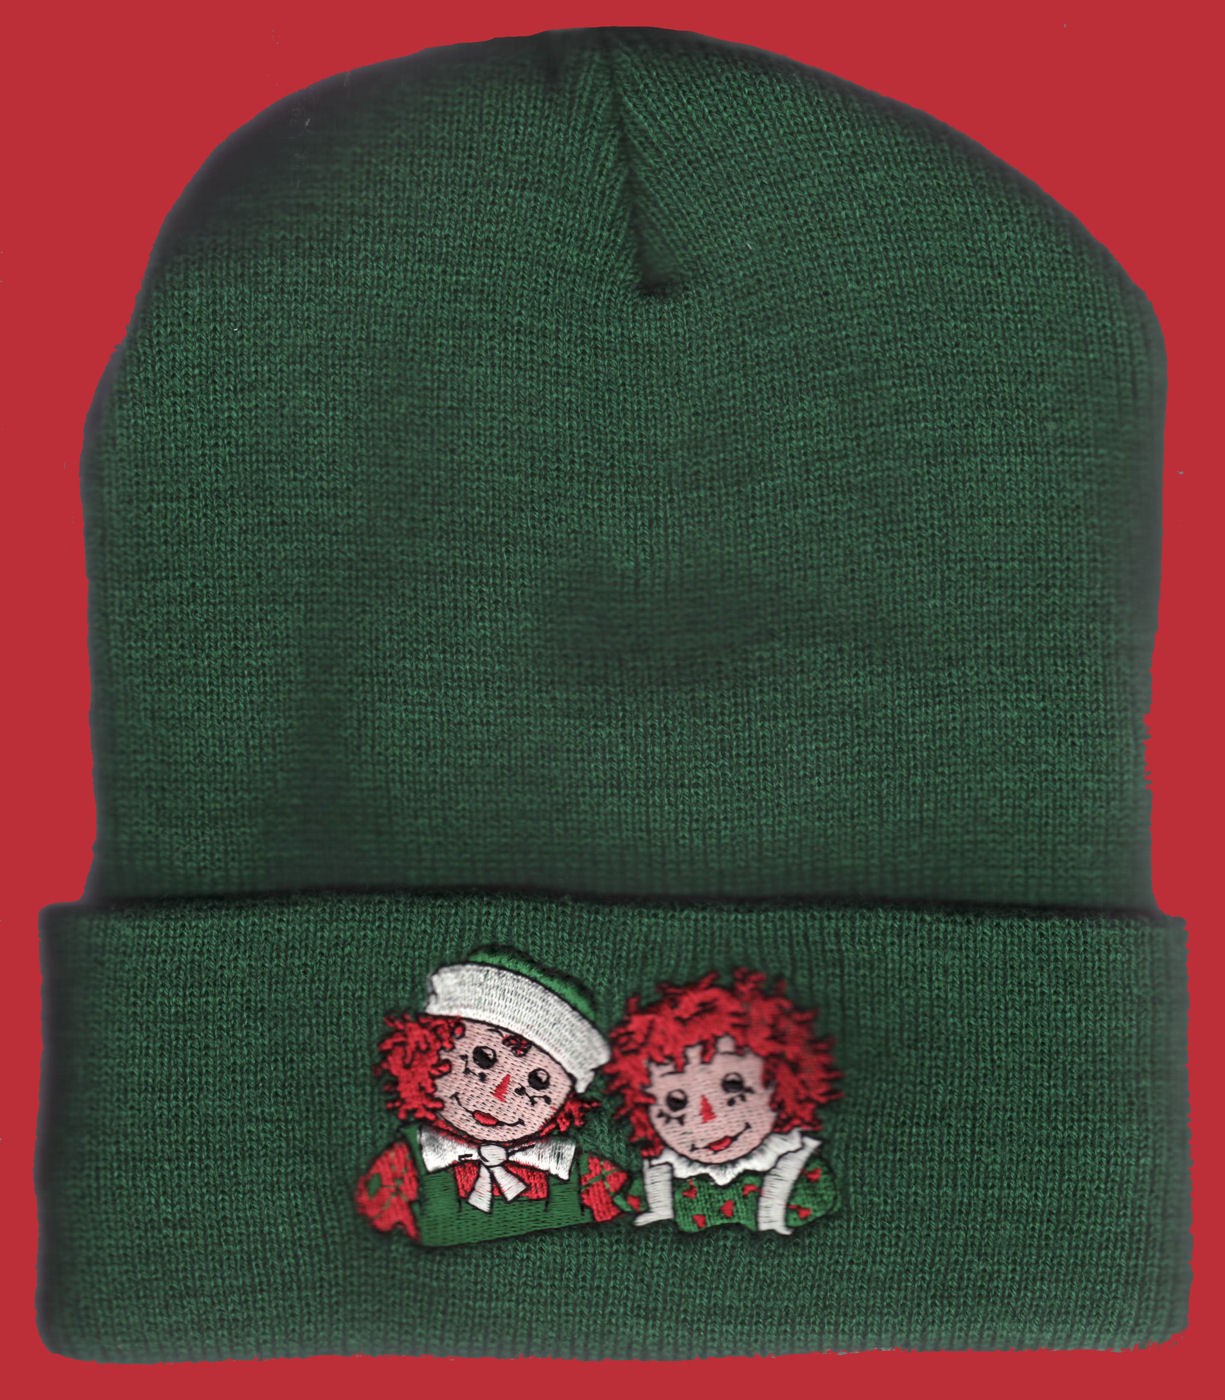 8bca8c091 Raggedy Ann & Andy Knit Cap from Target - Green